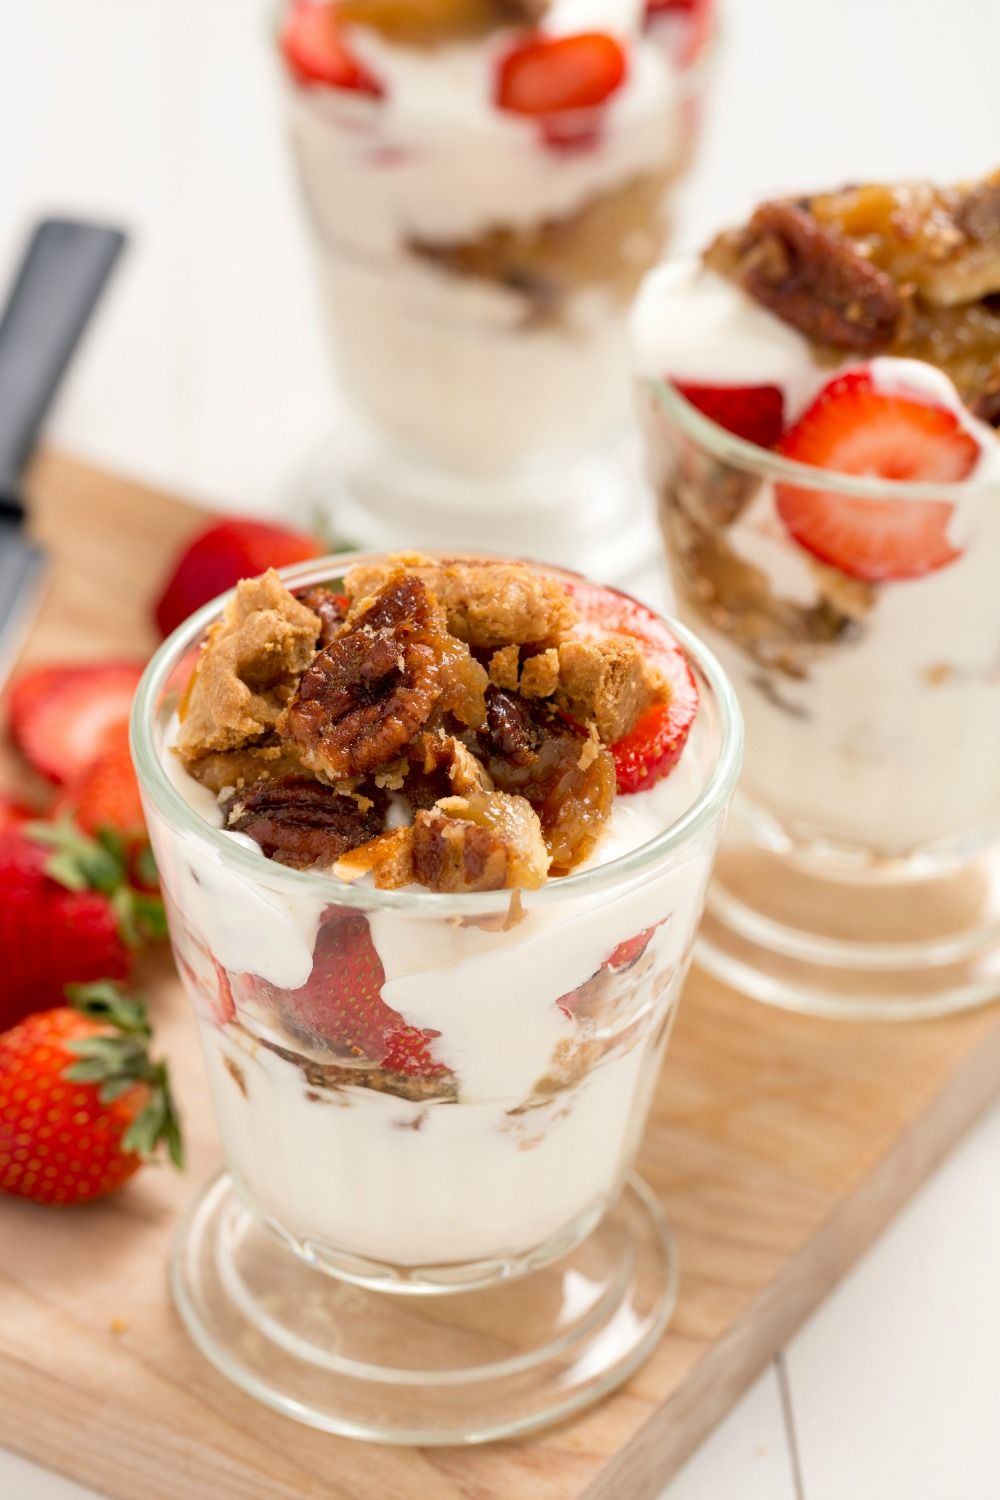 In a dream world, where it's totally acceptable to start the day with a balanced dessert, these pie parfaits are it. Layers of pecan or apple pie, plain yogurt (trust us, the pie provides all the sweetness you need), and sliced strawberries are a delicious way to kick off Black Friday.   - Delish.com